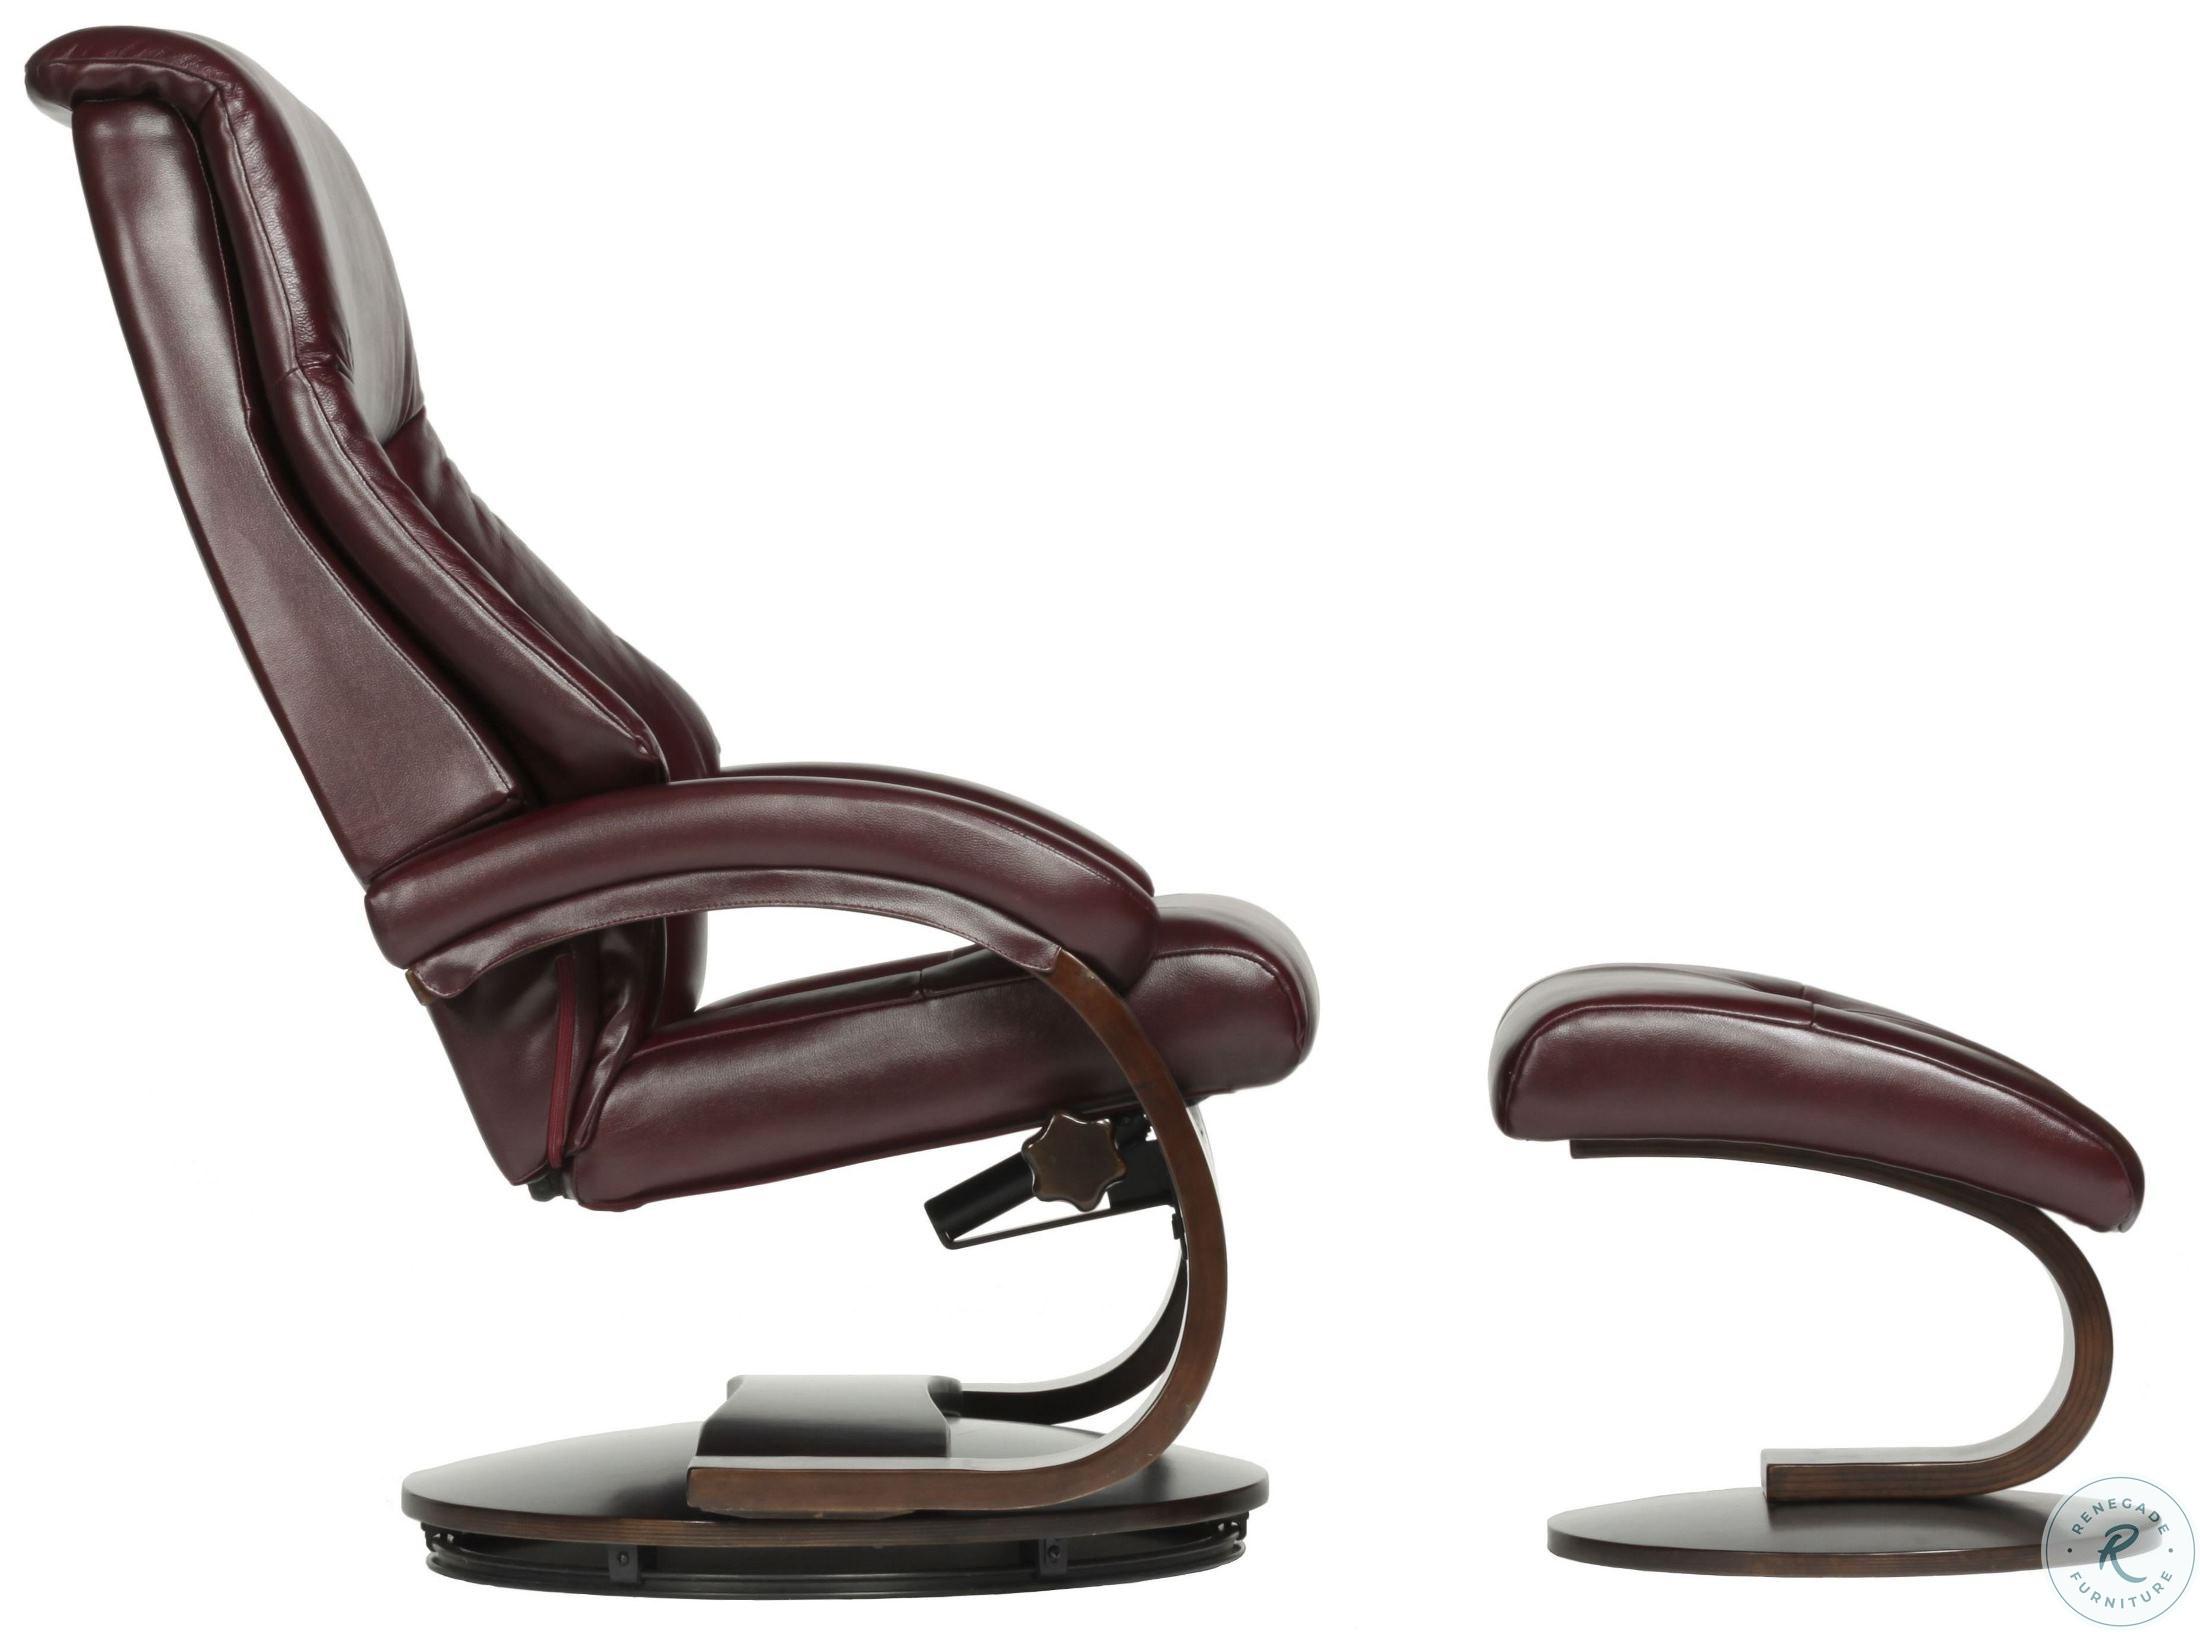 Pleasant Oslo Merlot Burgundy Top Grain Leather Swivel Recliner With Ottoman Pdpeps Interior Chair Design Pdpepsorg